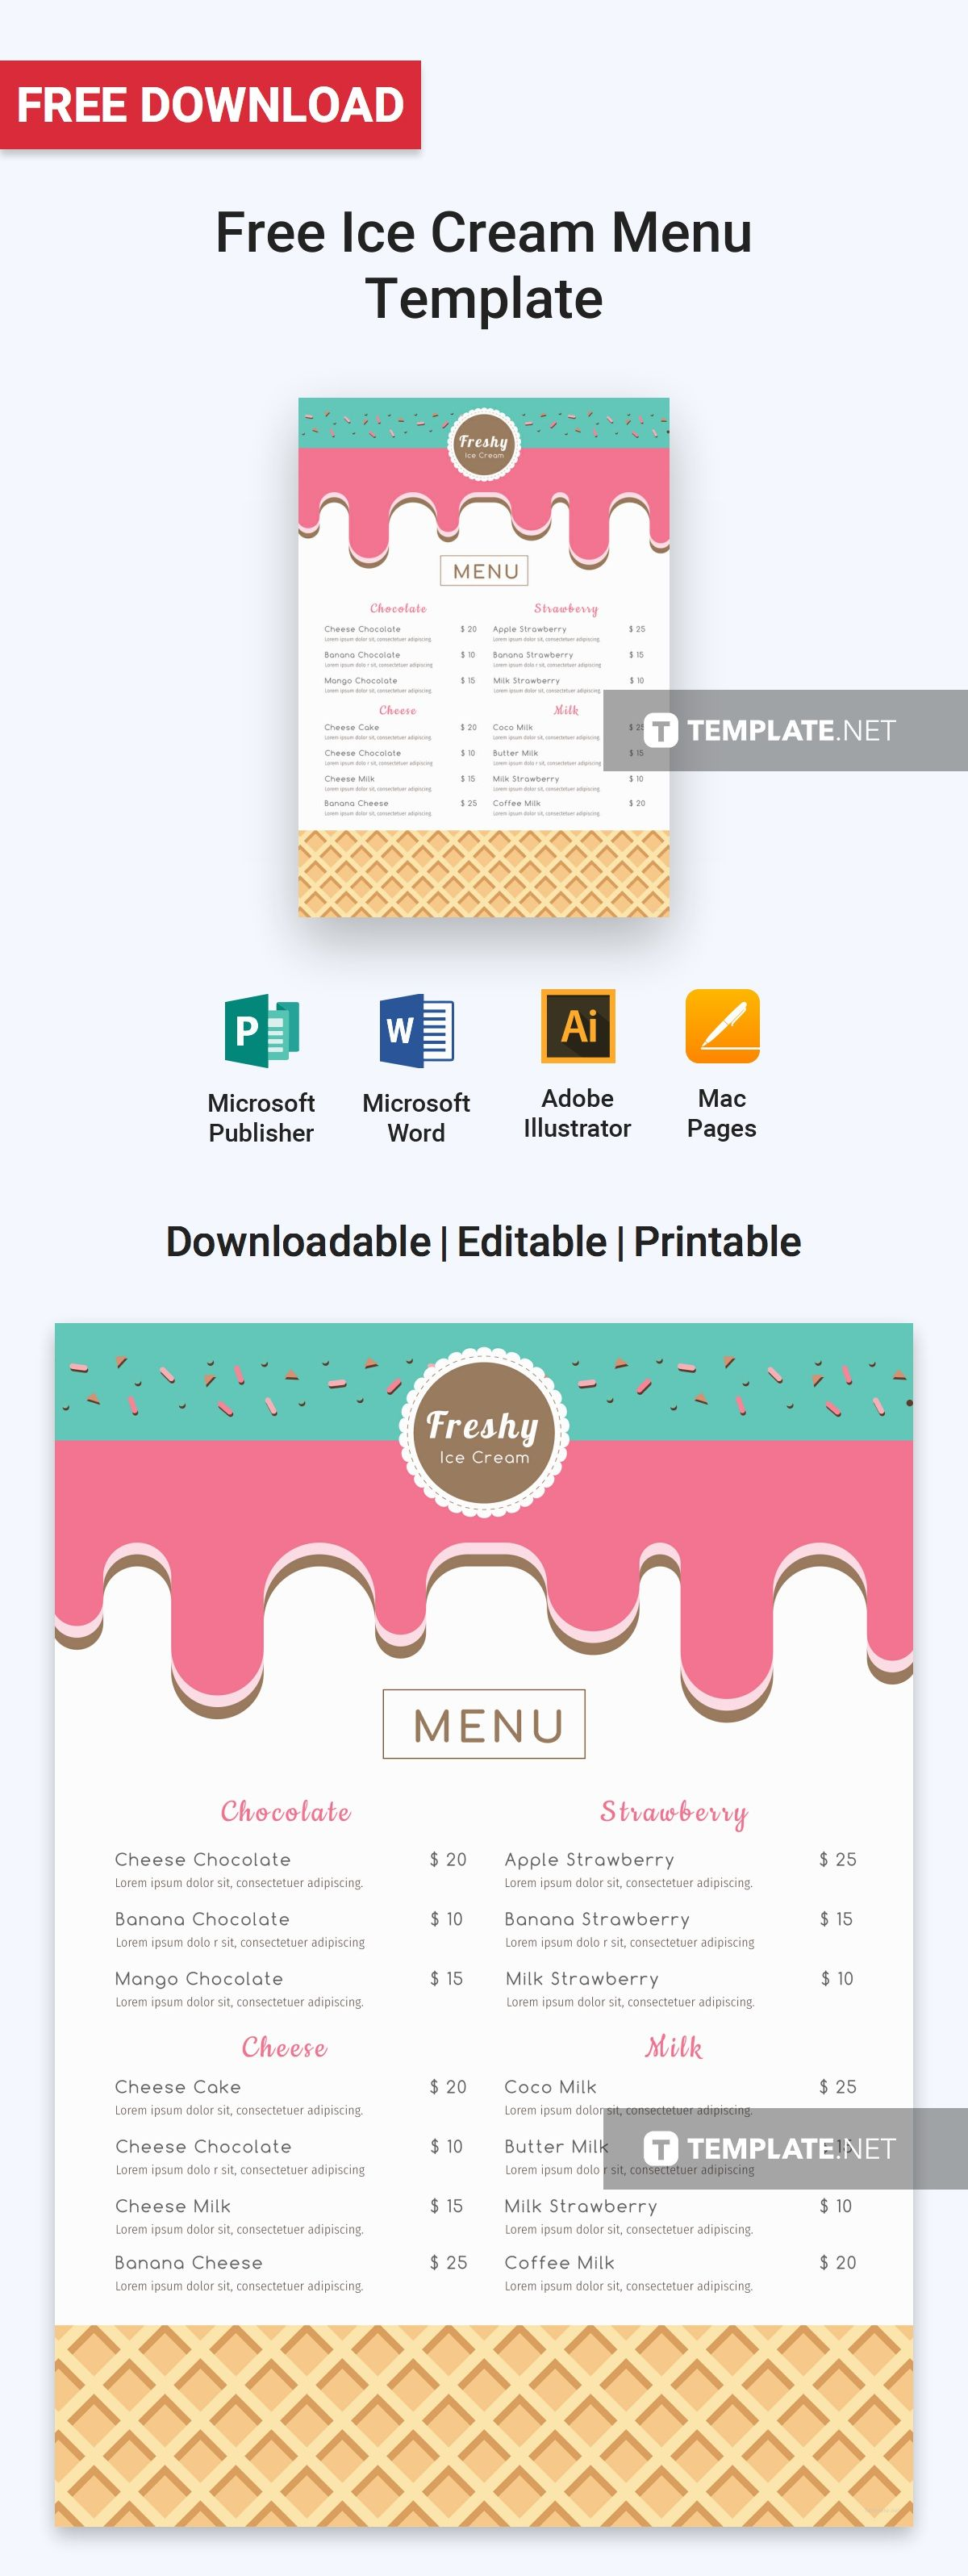 Menu Templates Free Microsoft Captivating Free Ice Cream Menu  Pinterest  Free Menu Templates Ice Cream .